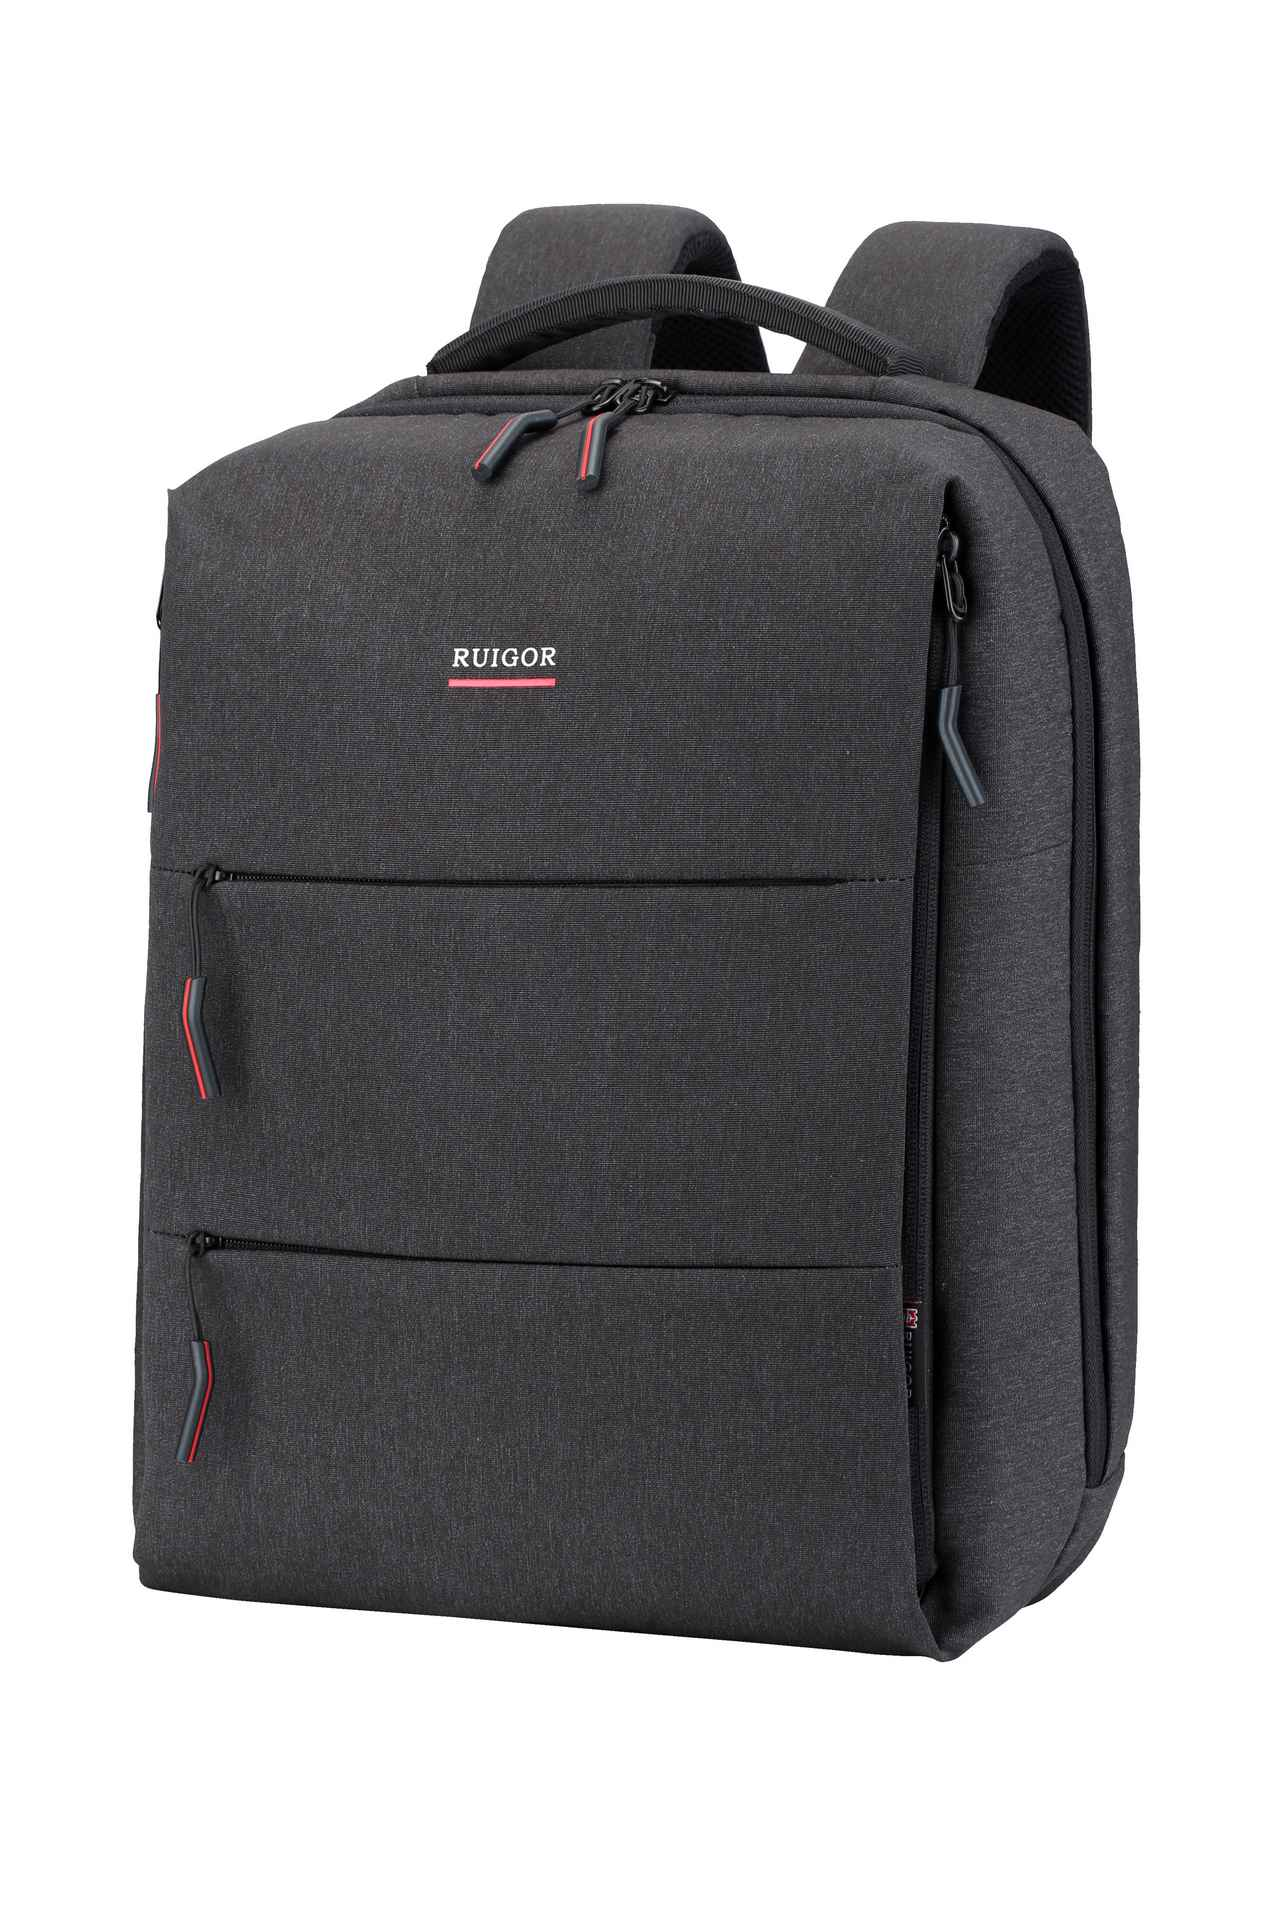 RUIGOR CITY 37 Laptop Backpack Dark Grey - Unique Style